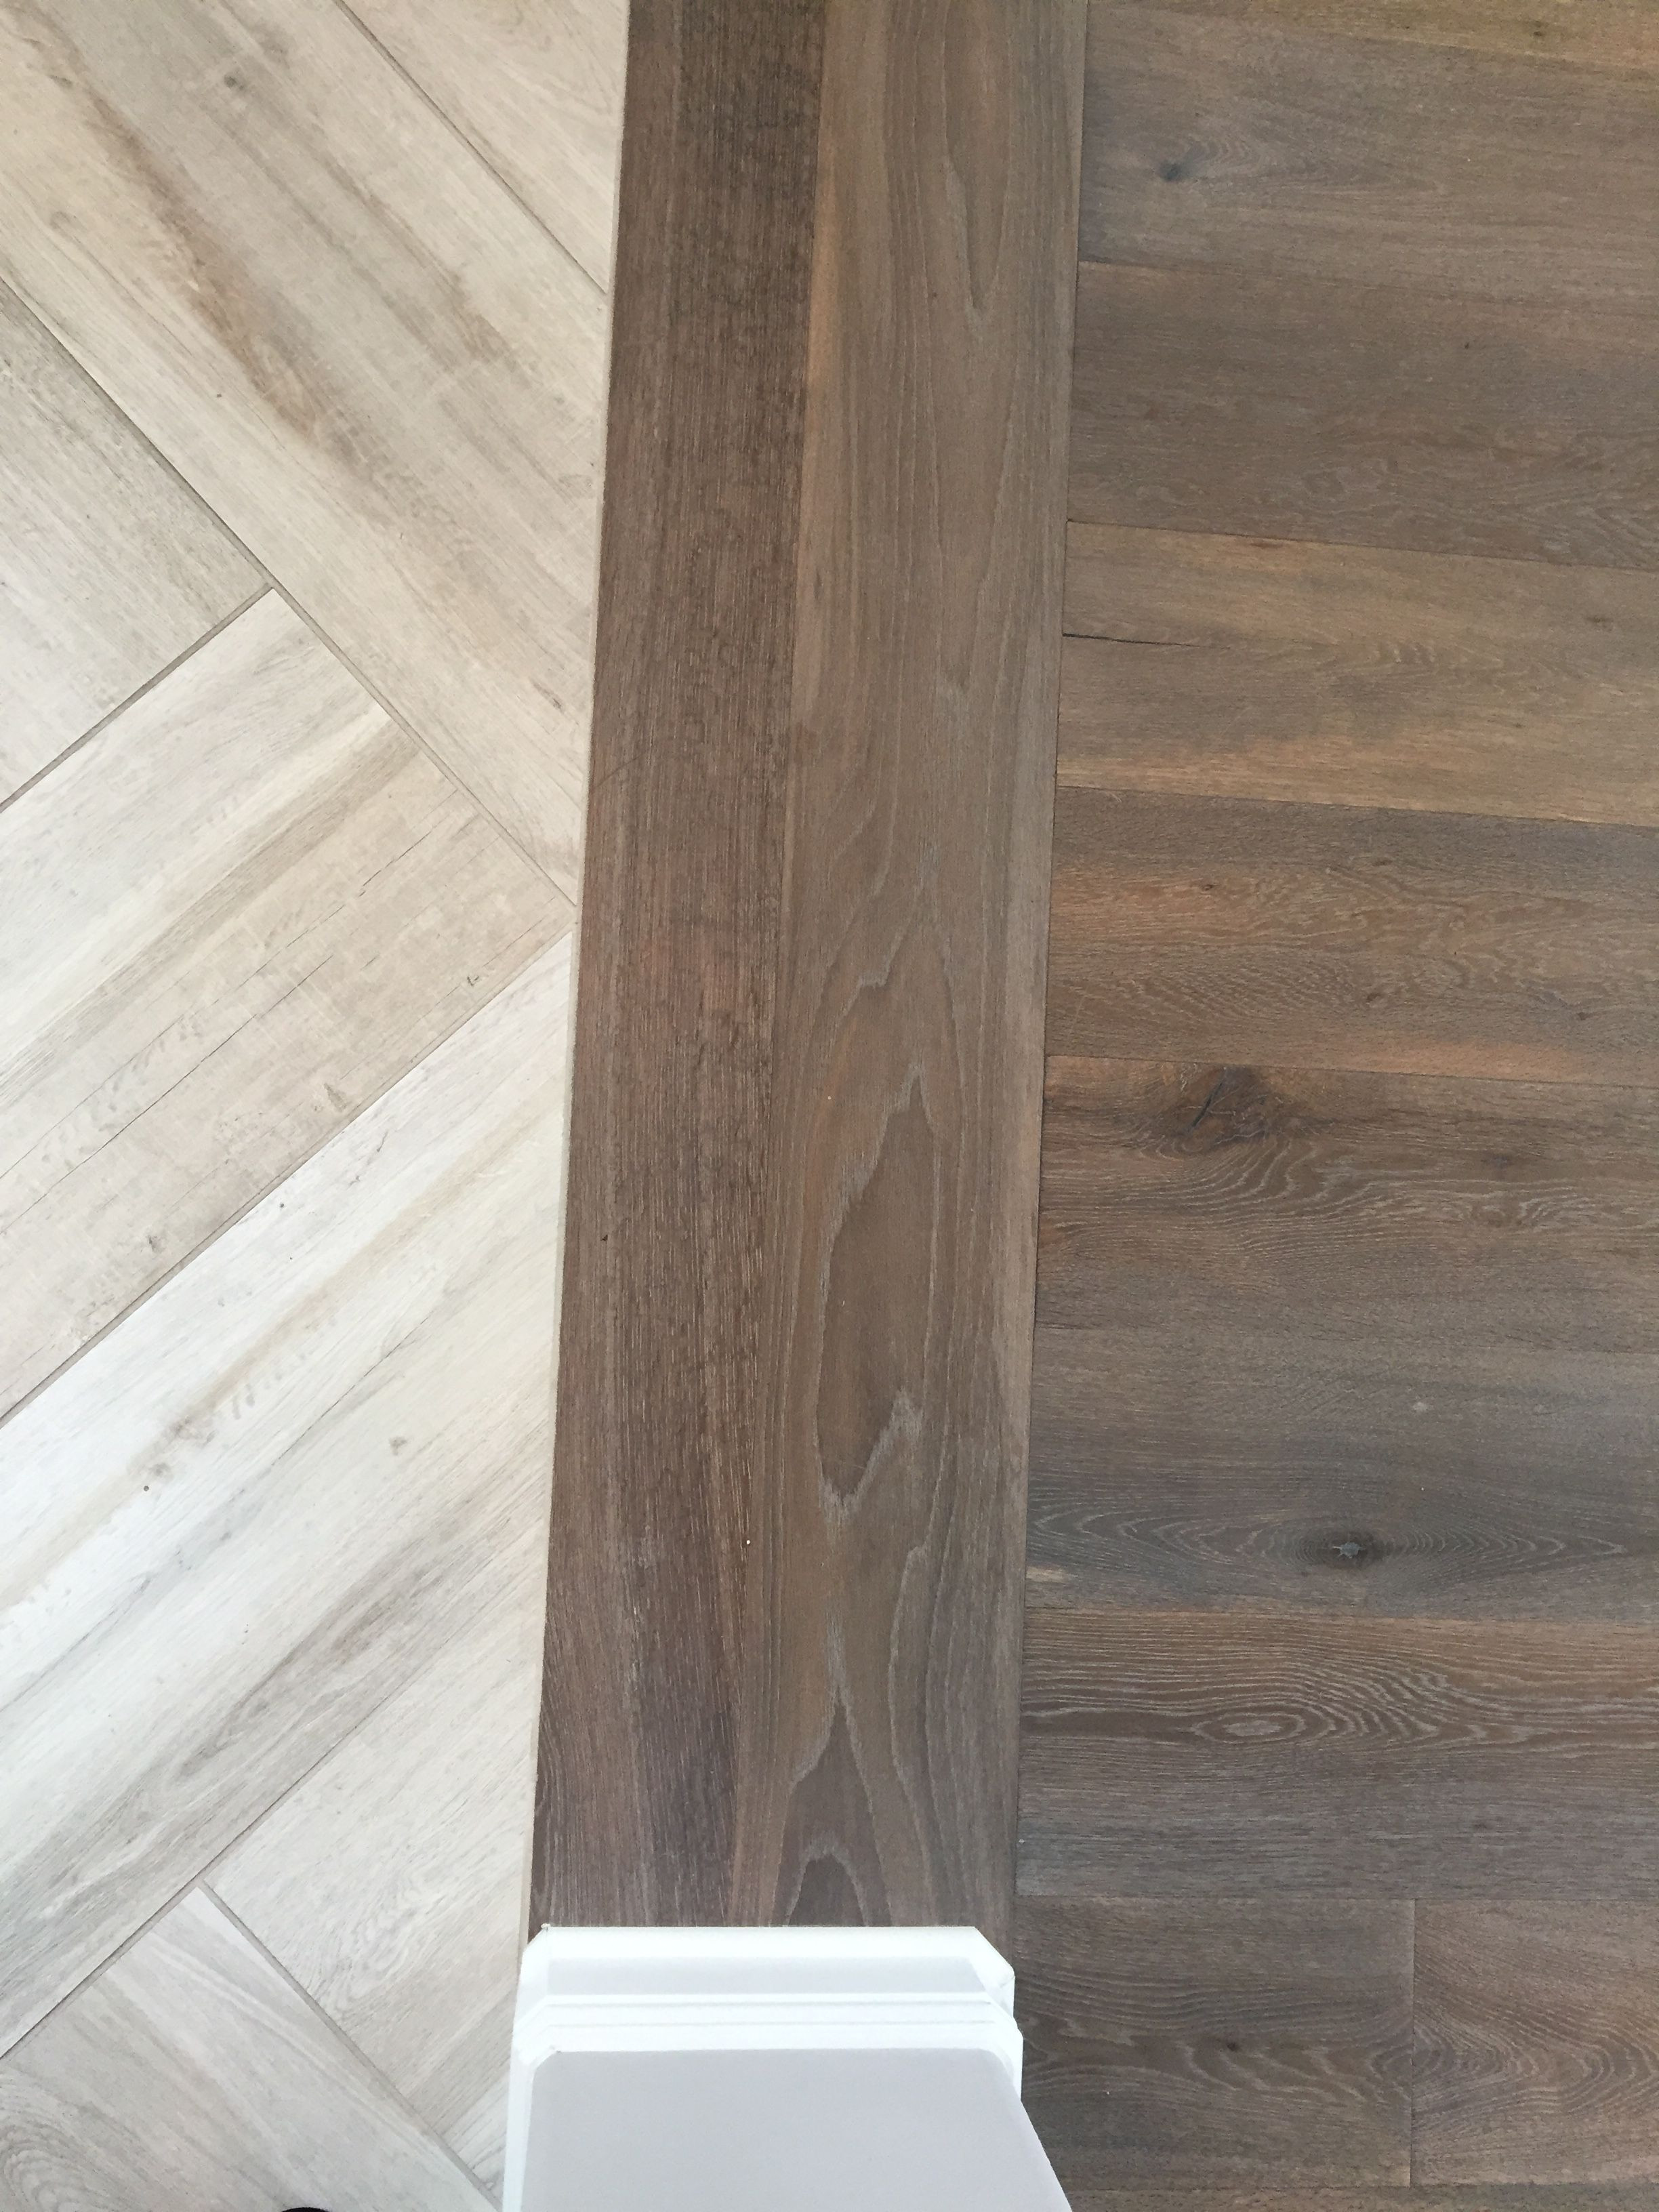 solid hardwood flooring uk of floor transition laminate to herringbone tile pattern model with regard to floor transition laminate to herringbone tile pattern herringbone tile pattern herringbone wood floor